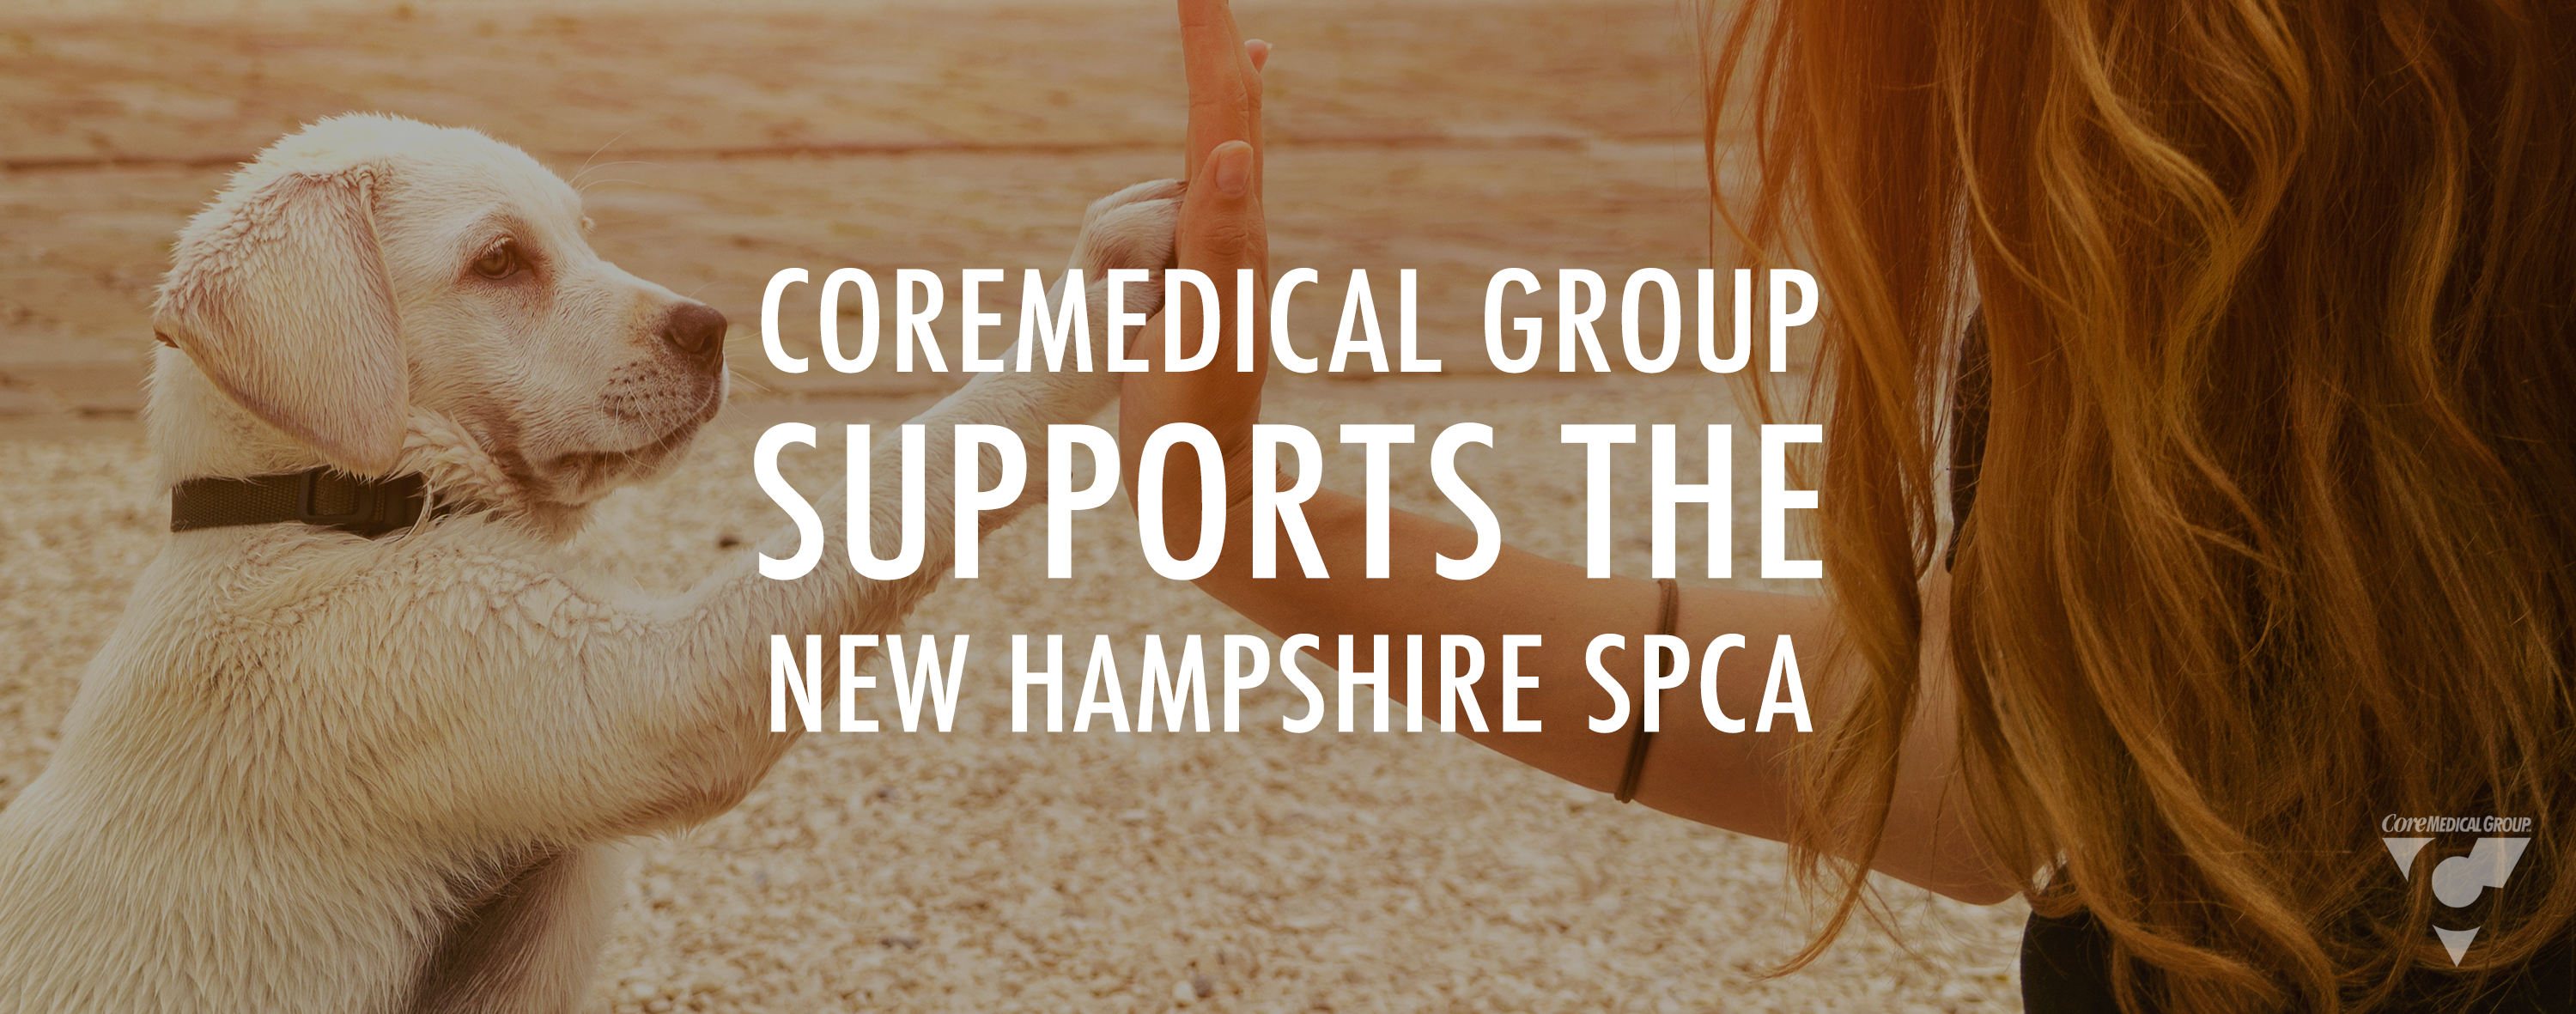 CoreMedical Group Supports The New Hampshire SPCA